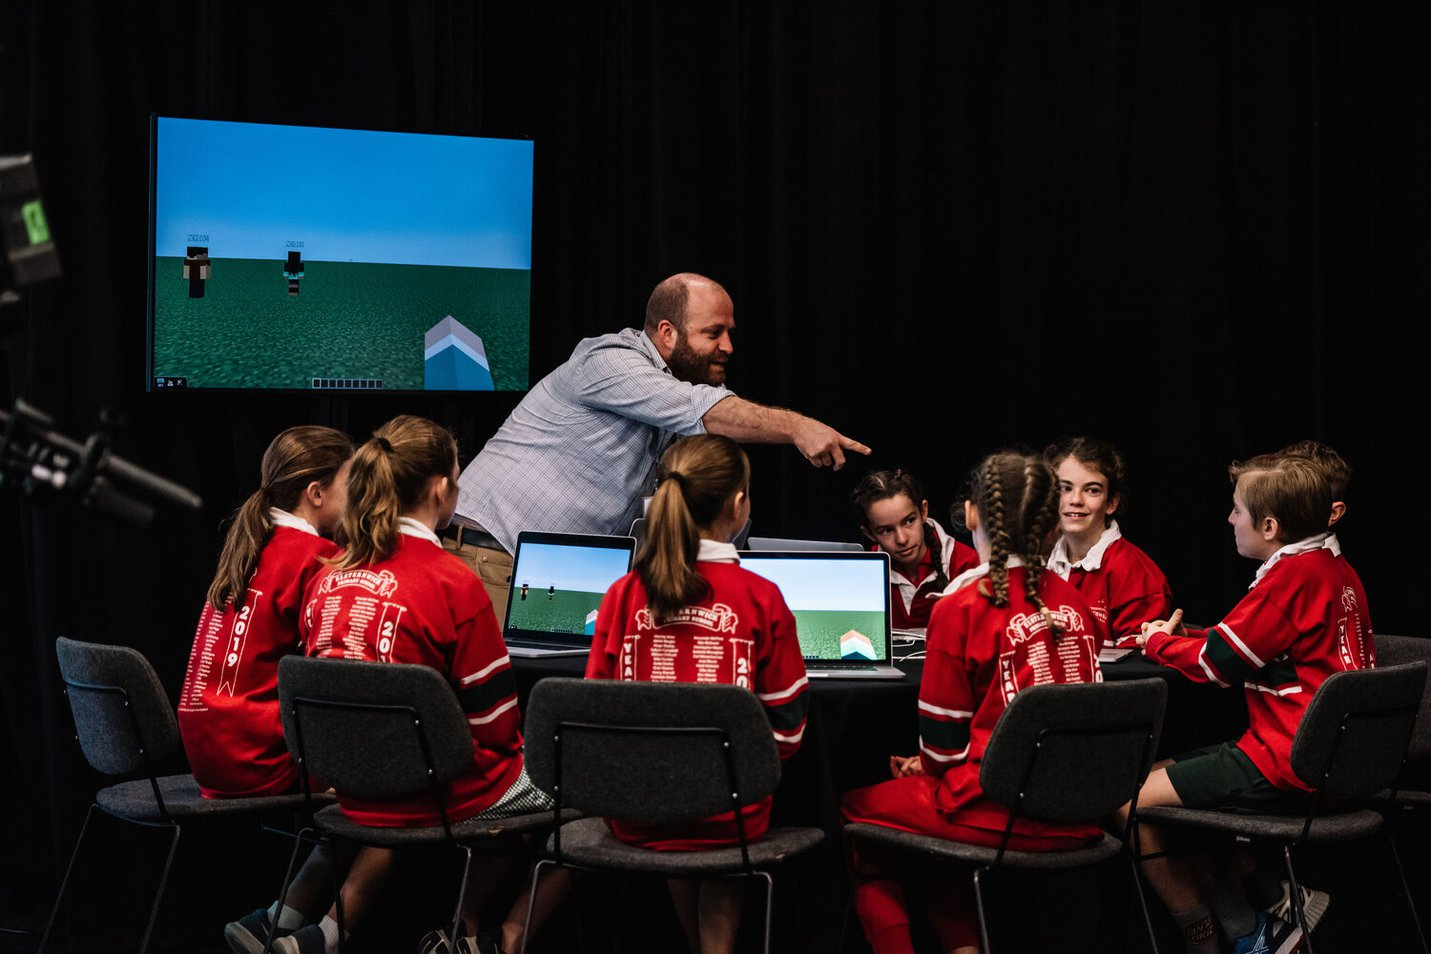 The year six class from Elsternwick Primary School interact with an activity station in the Gandel Digital Future Lab